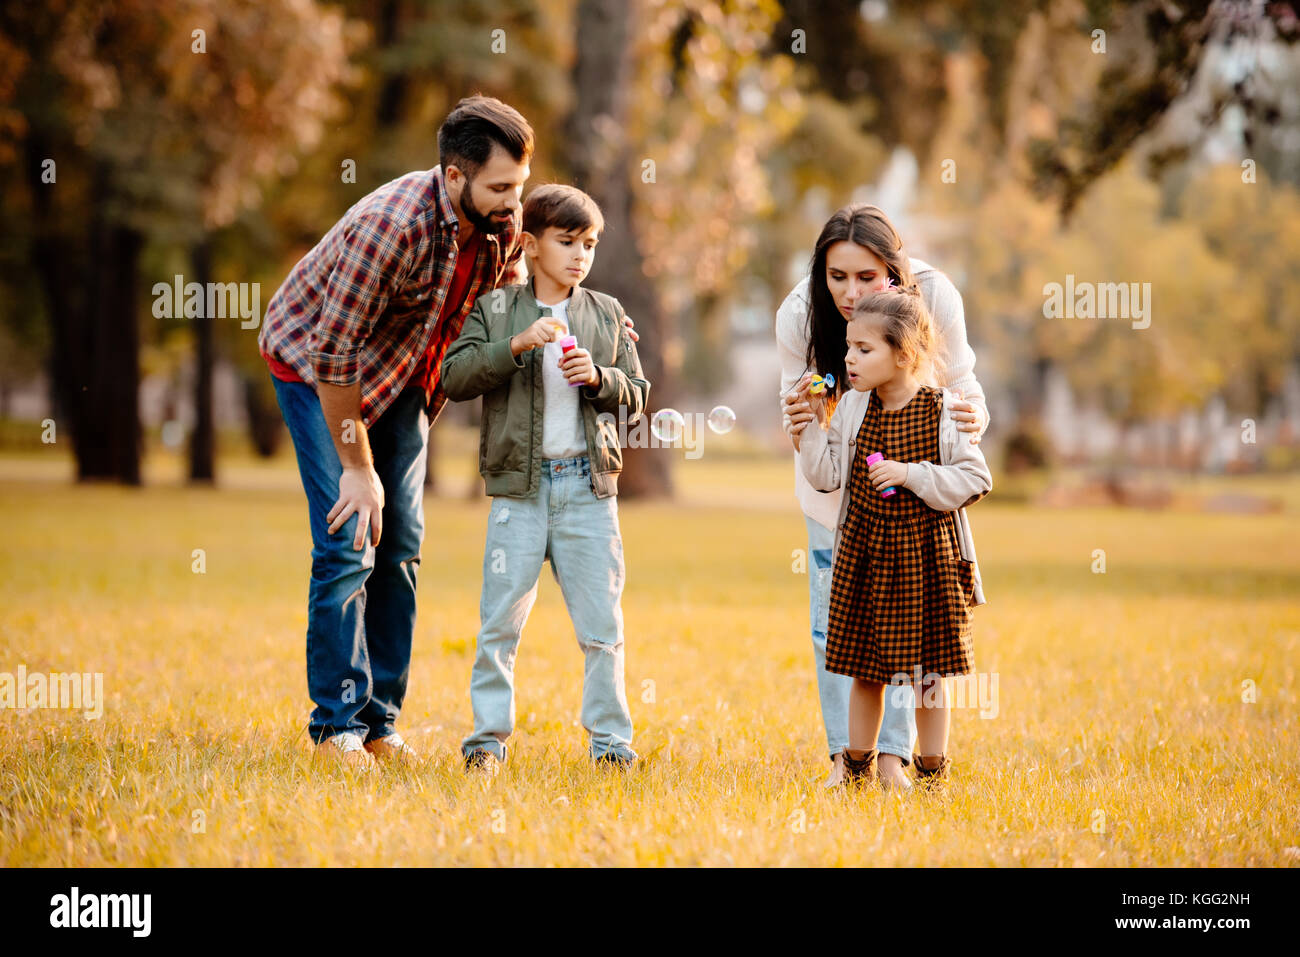 Family blowing soap bubbles - Stock Image